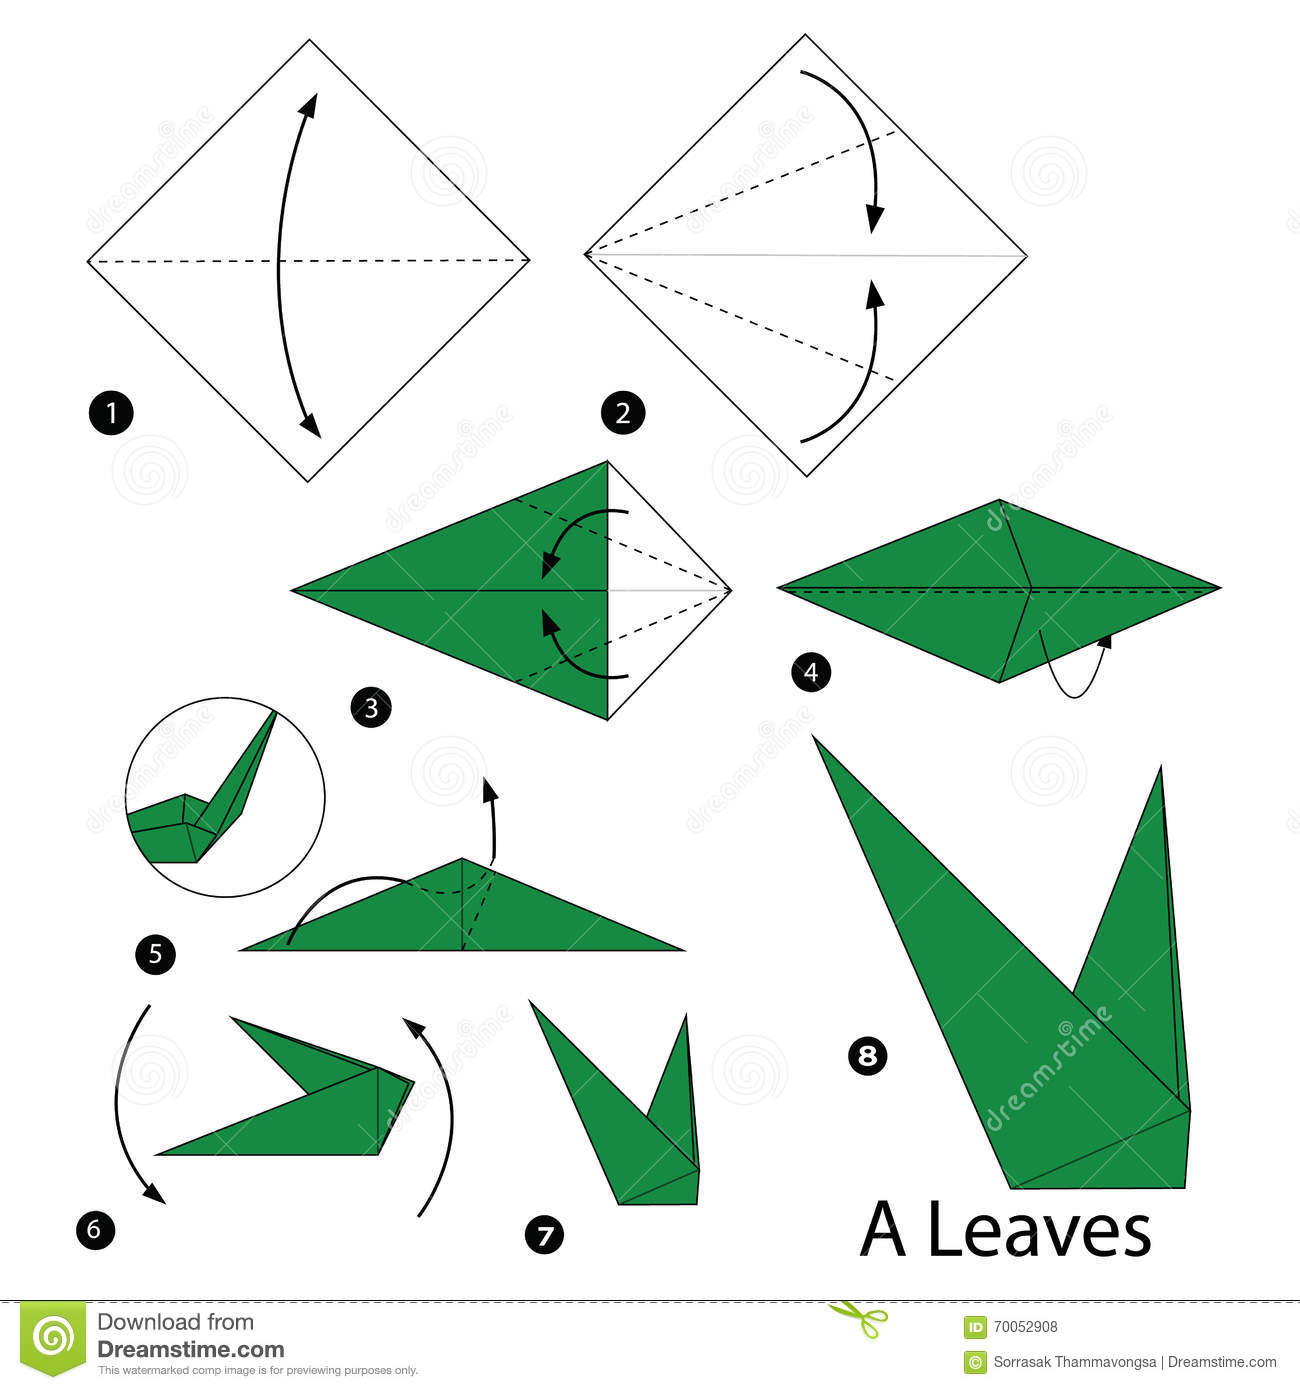 Origami origami 3d origami instructions book 3d origami instructions - Step By Step Instructions How To Make Origami A Leaves